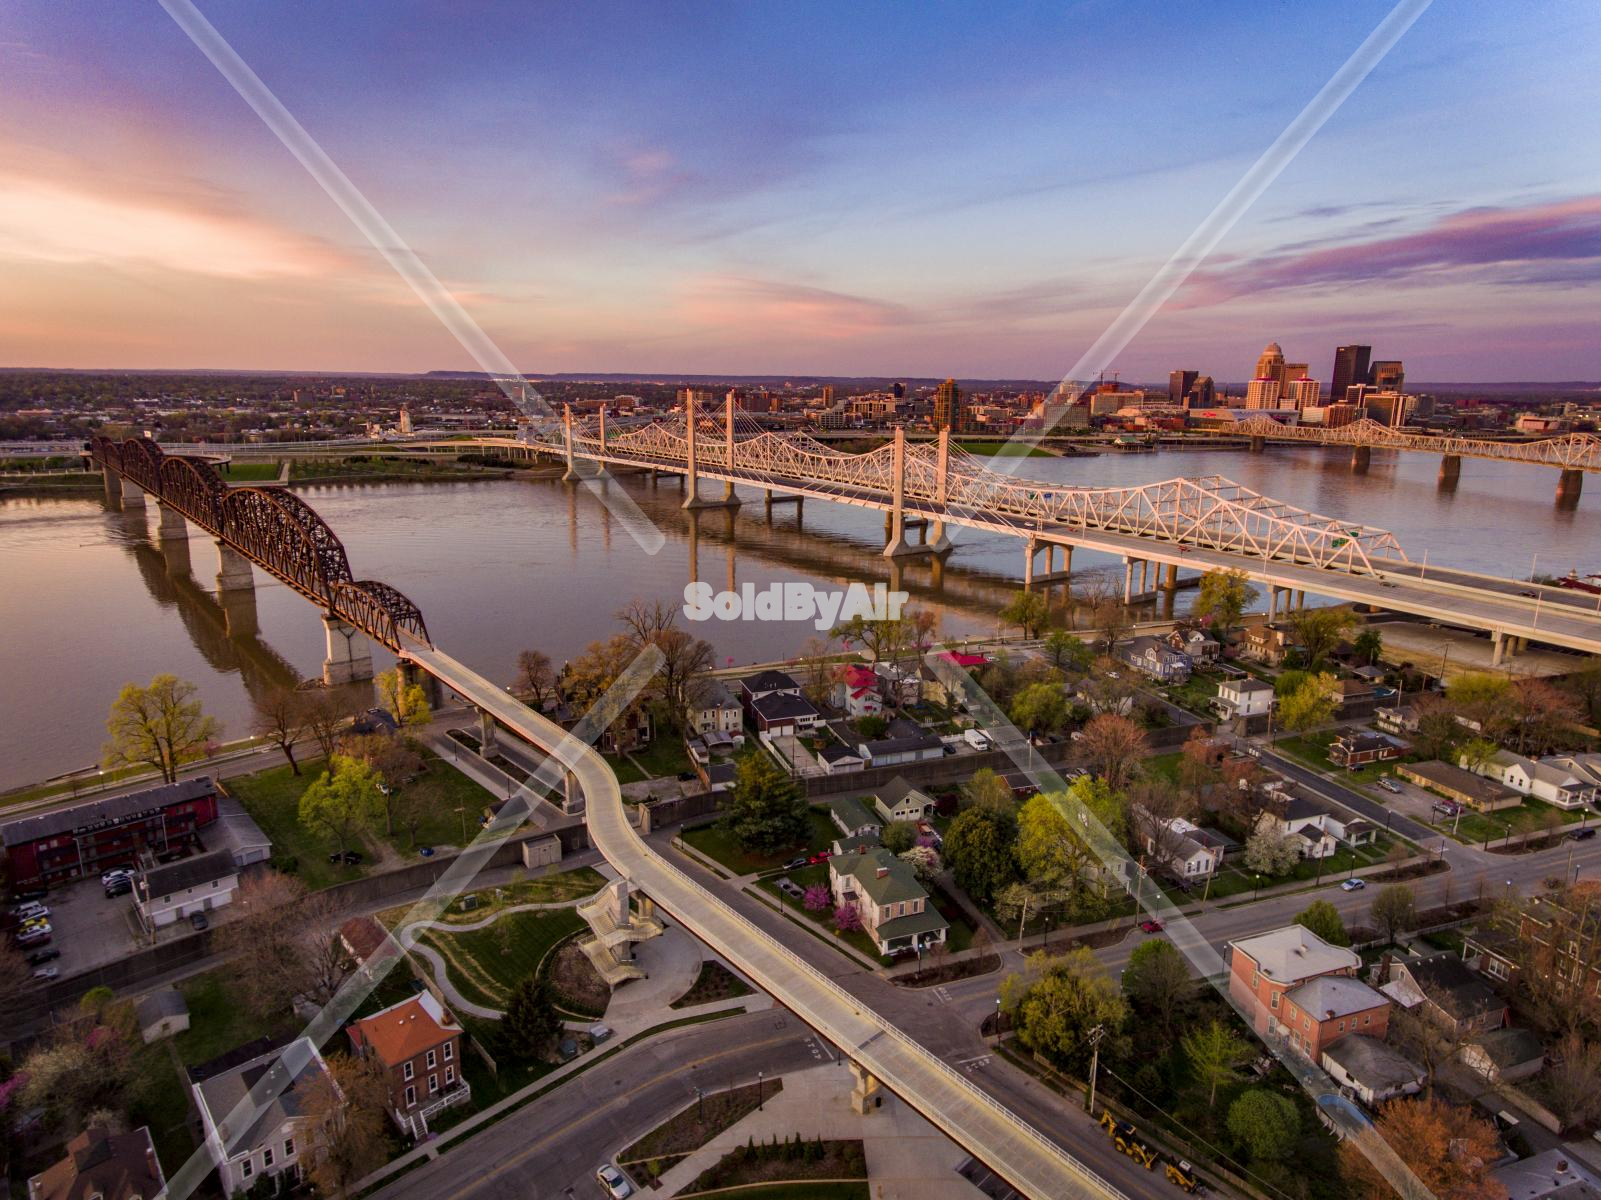 Drone Photo of Ohio river at the bridges towards Louisville,KY in Jeffersonville Indiana